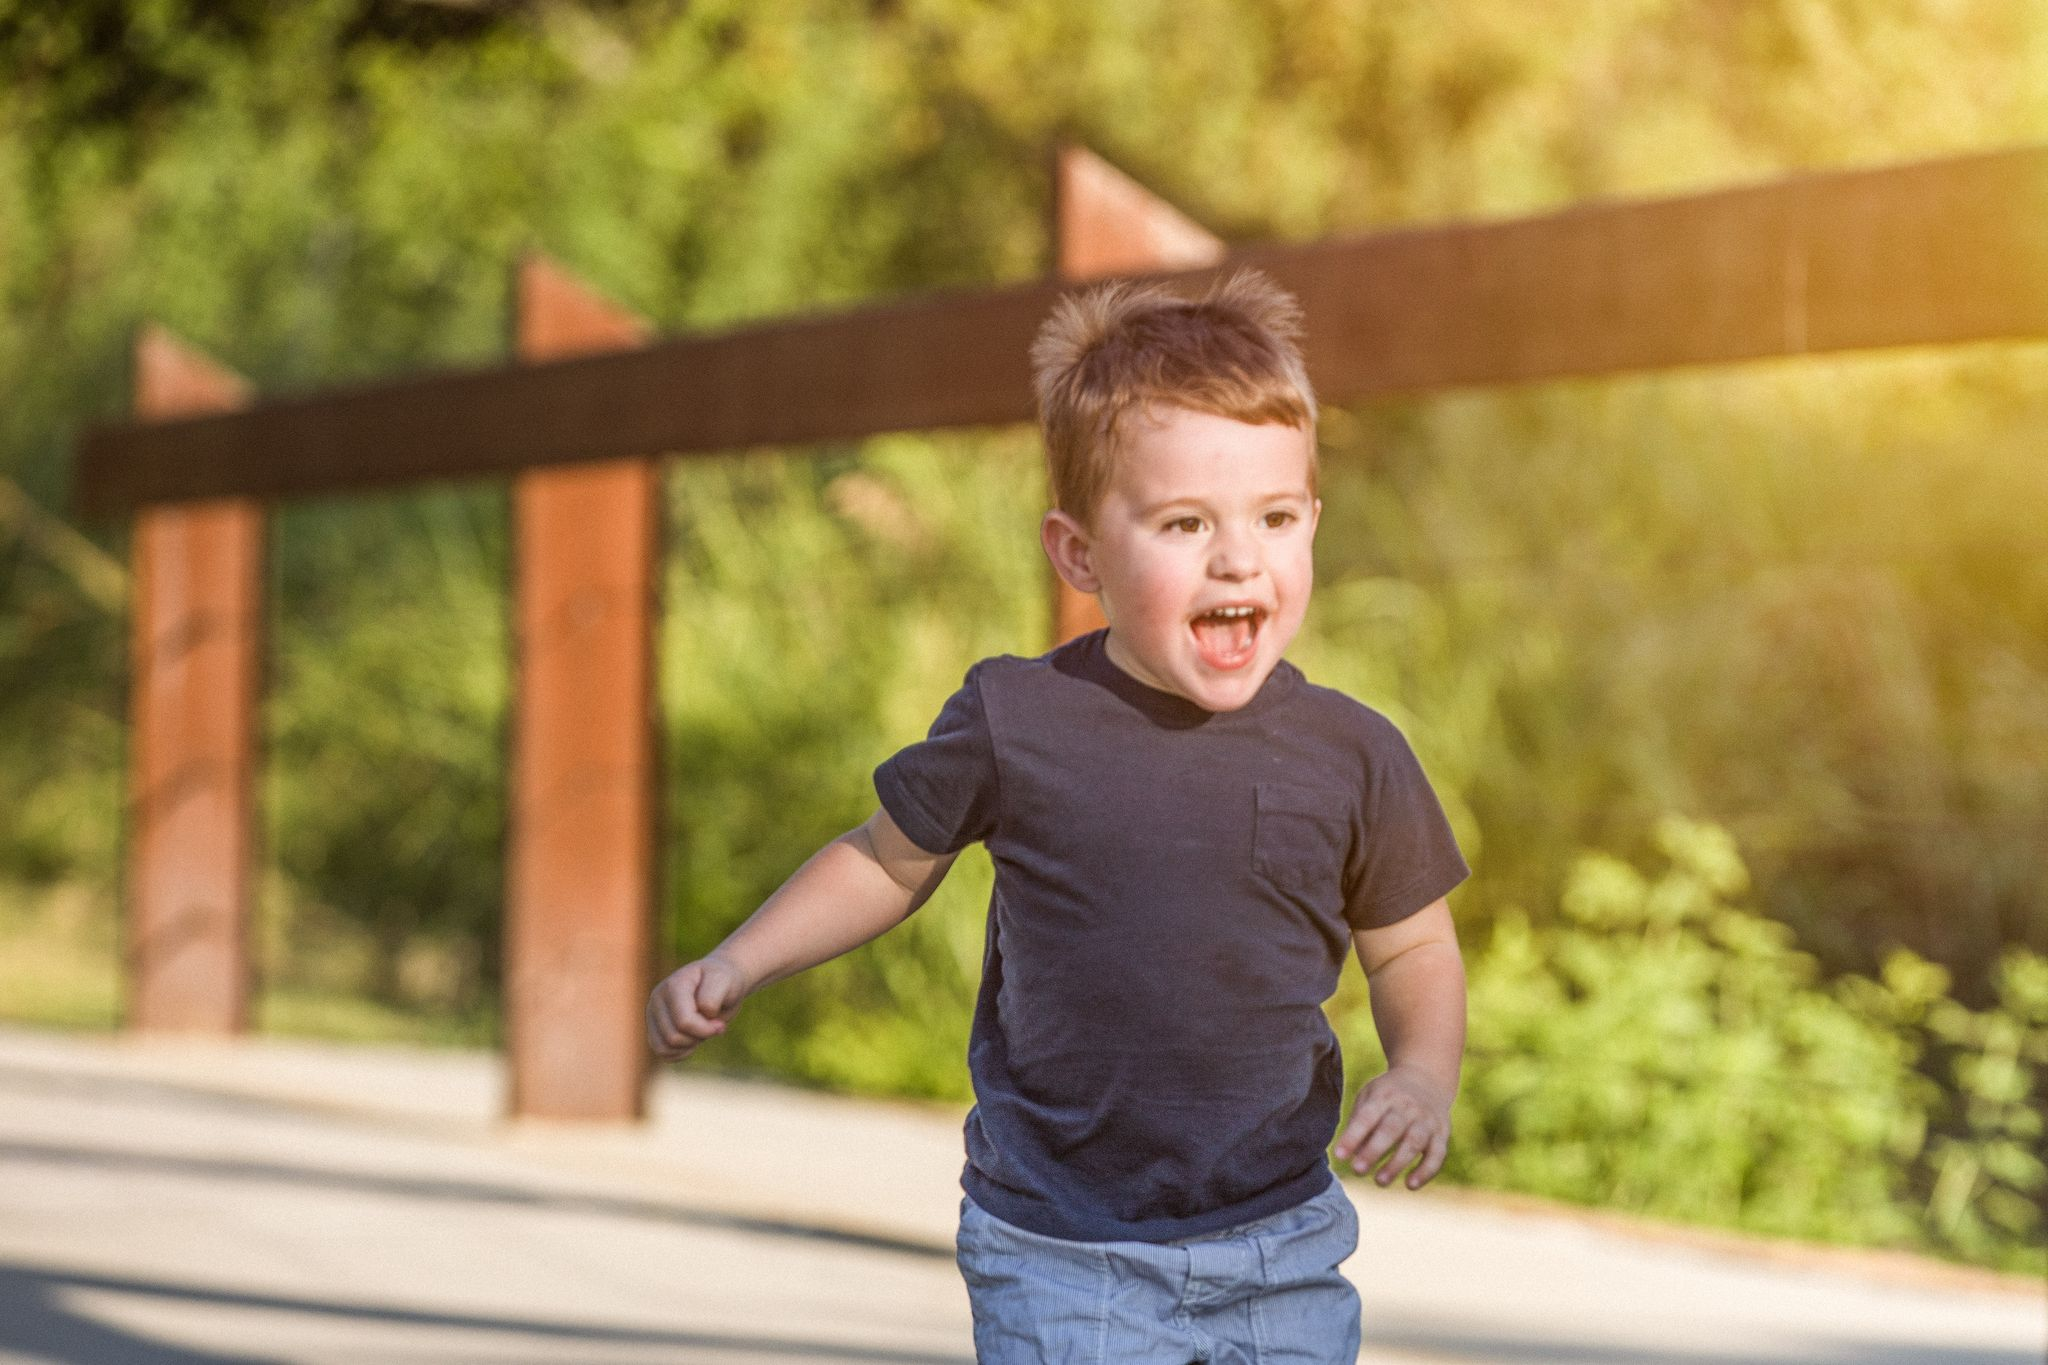 A young boy smiling and running.